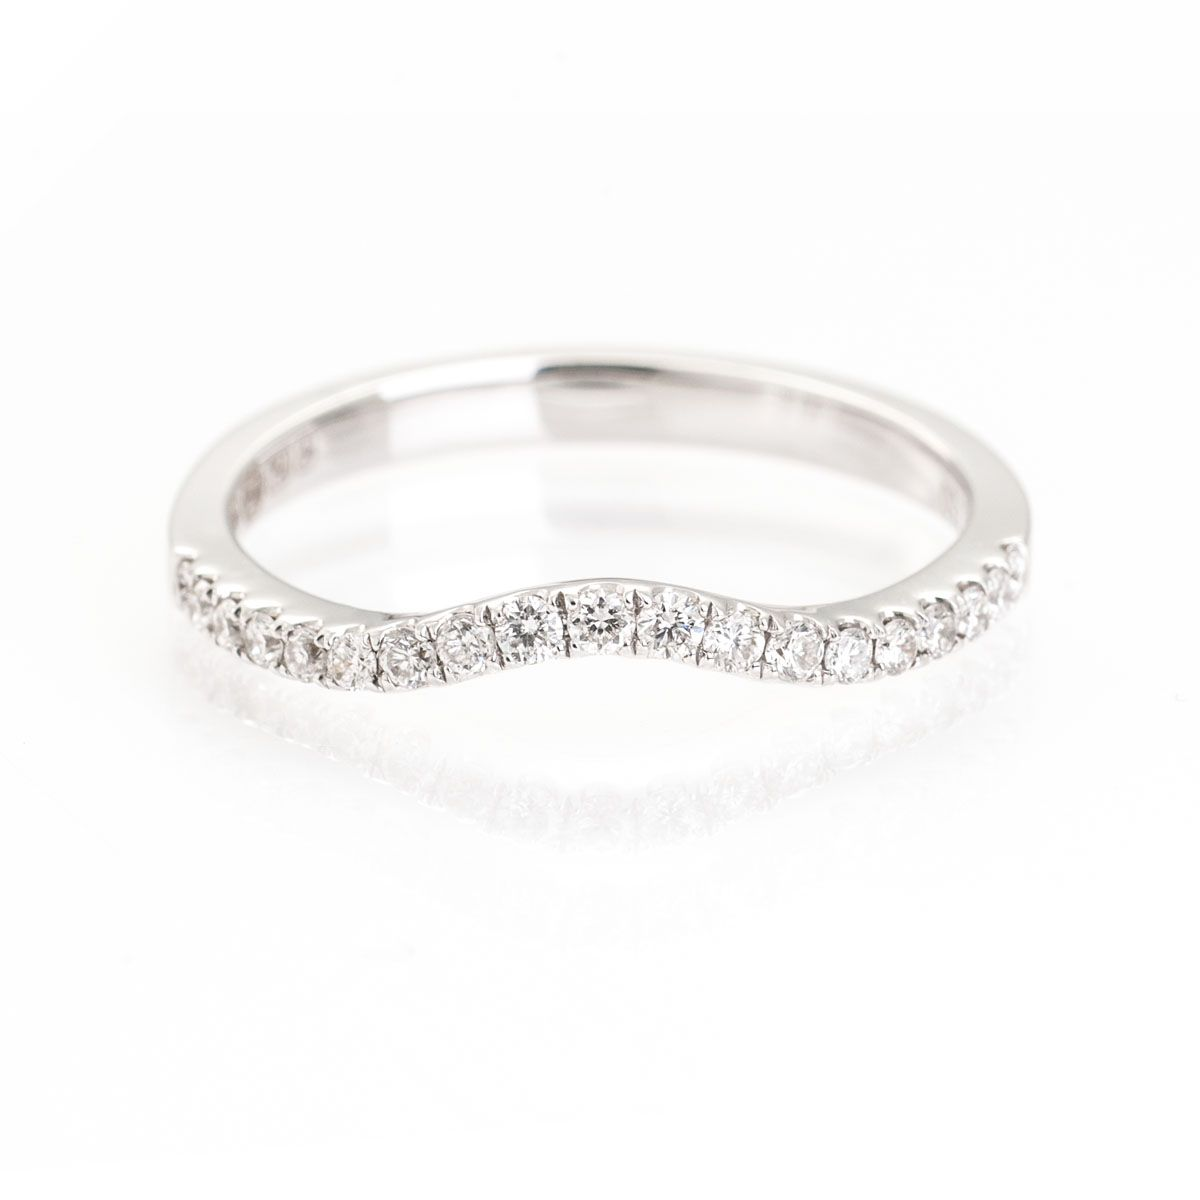 Shaped diamond wedding ring Wedding rings Pinterest Diamond